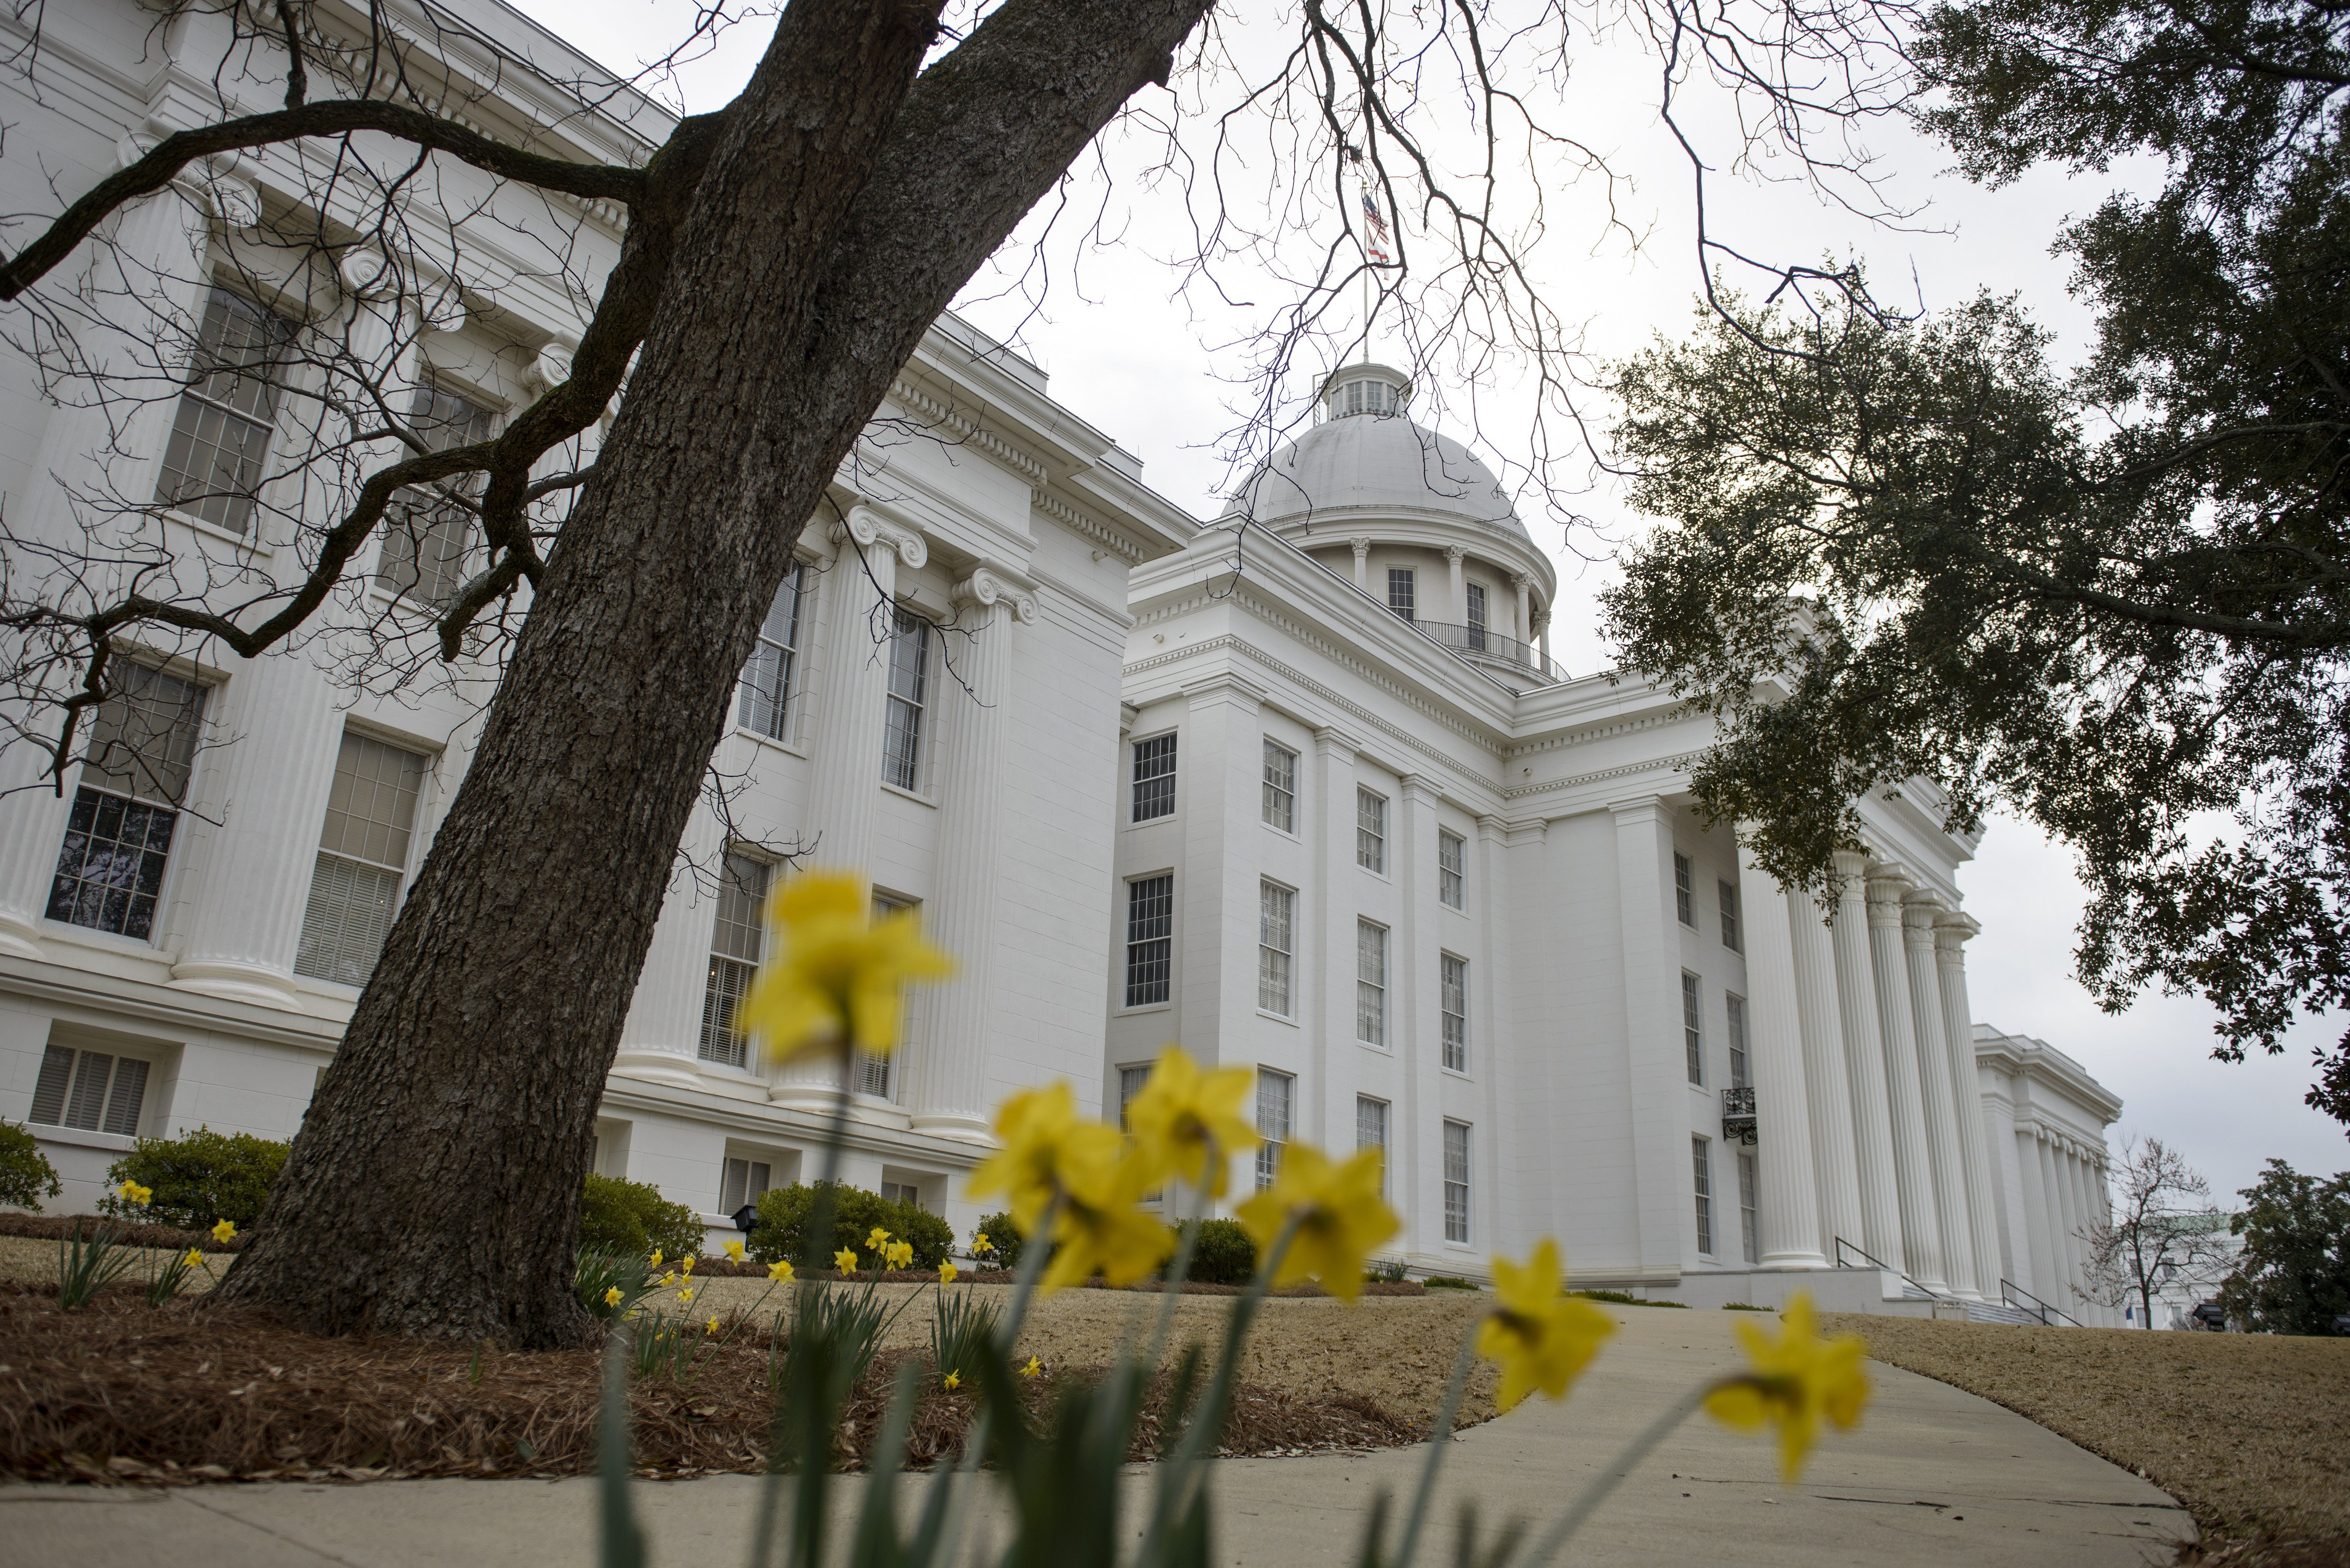 A view of the state capitol on March 6, 2015 in Montgomery, Alabama.